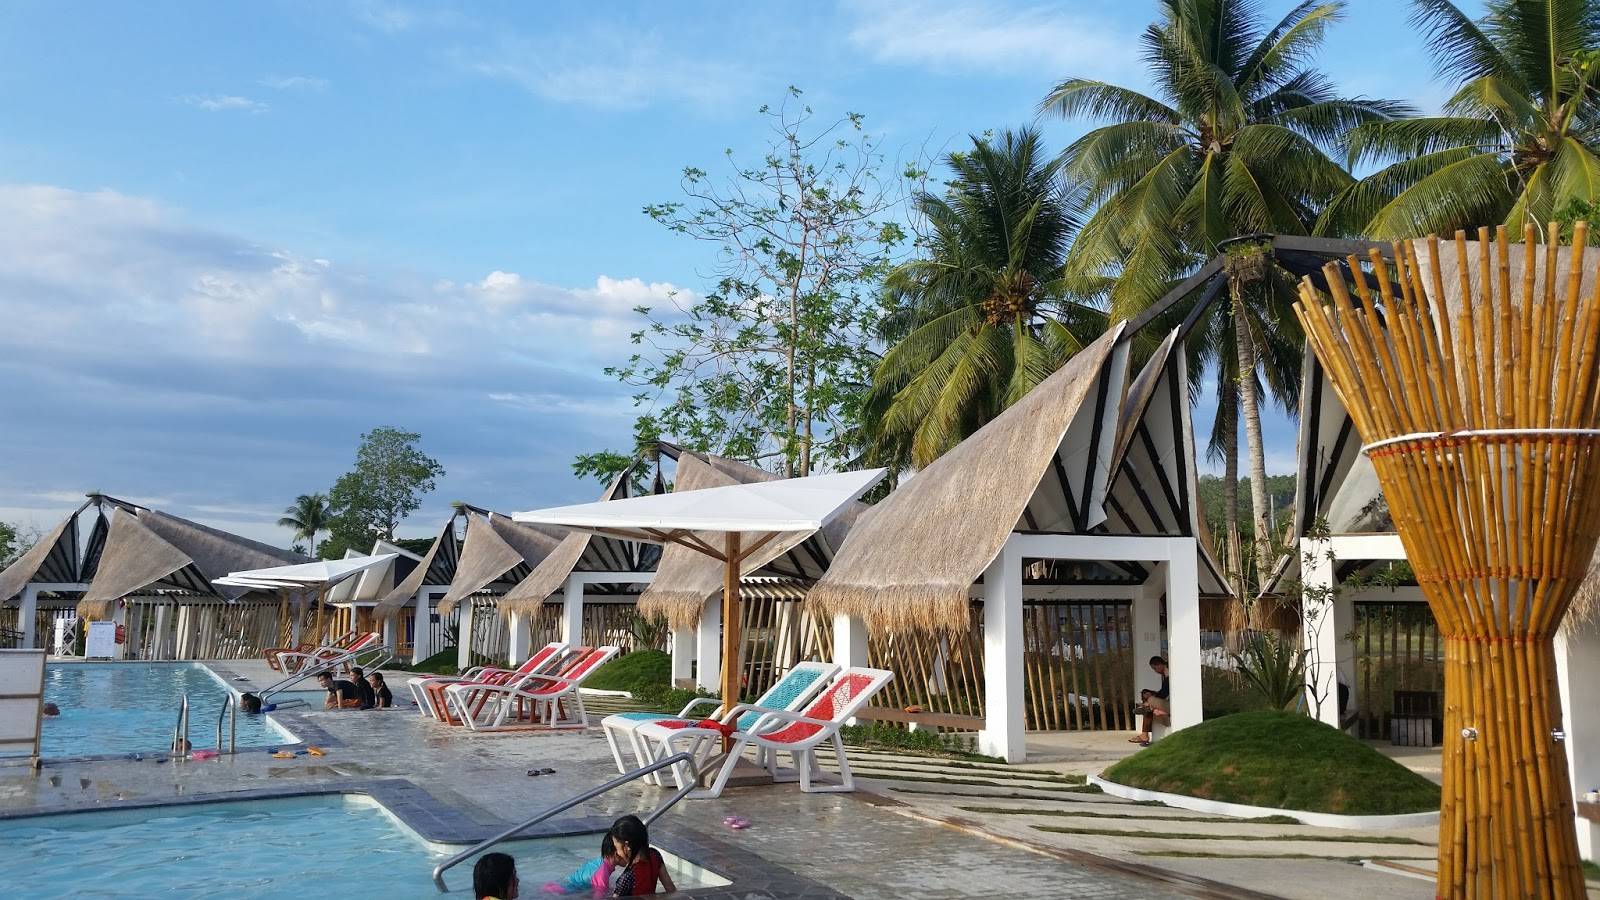 Cavanico il Mare - Samal City @ Travelers Book Updates ...